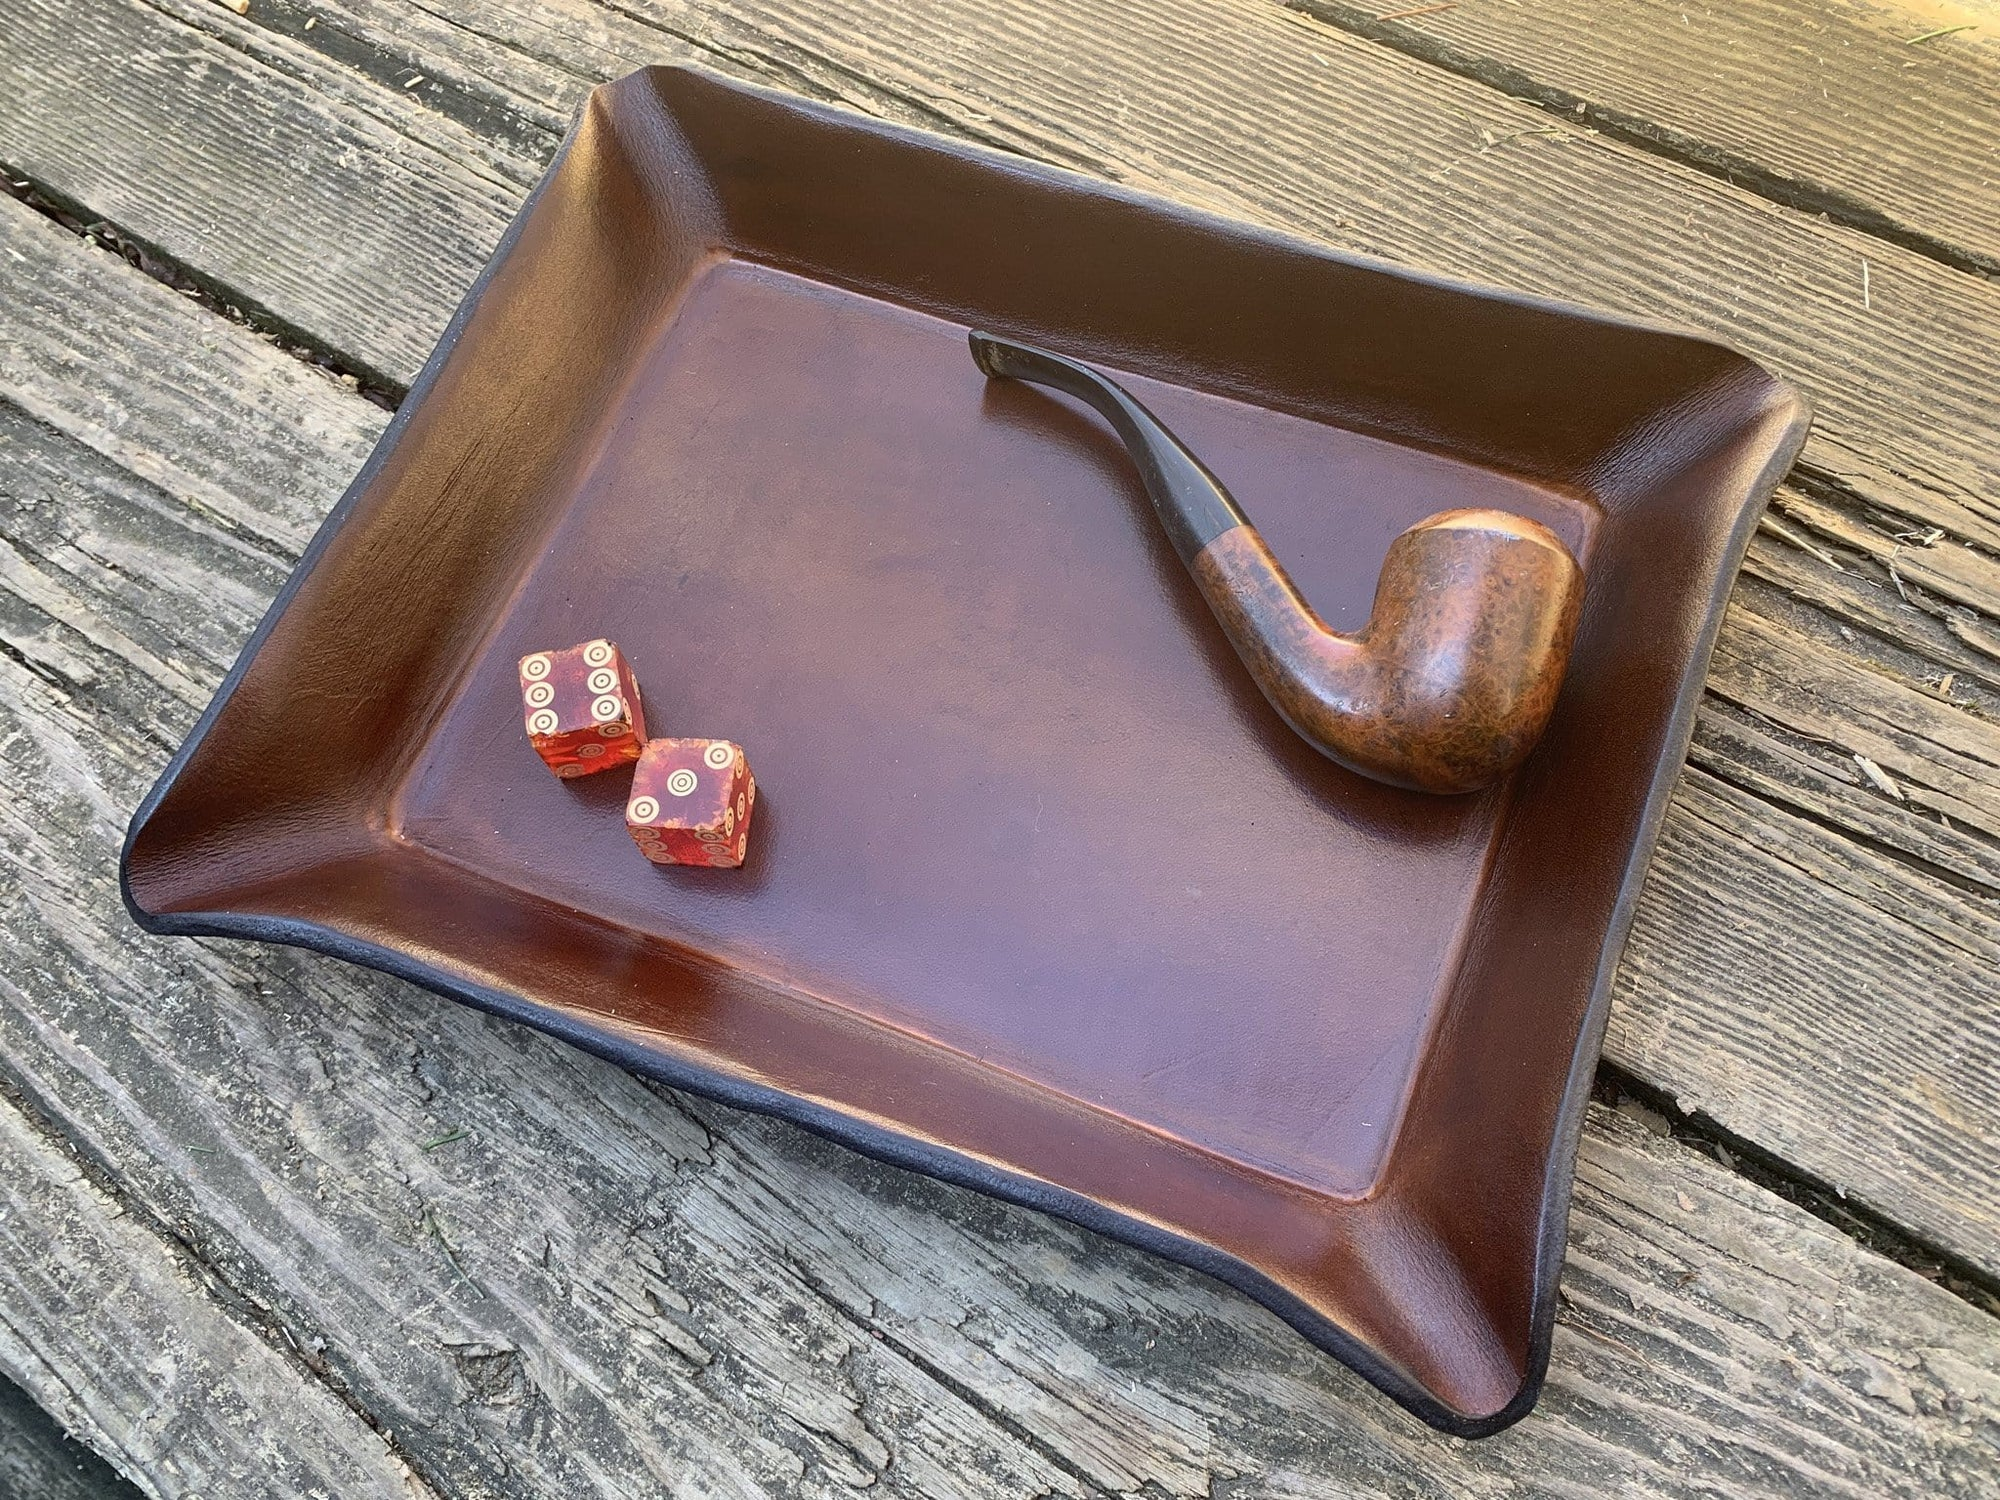 Leather valet tray for tobacco pipes.